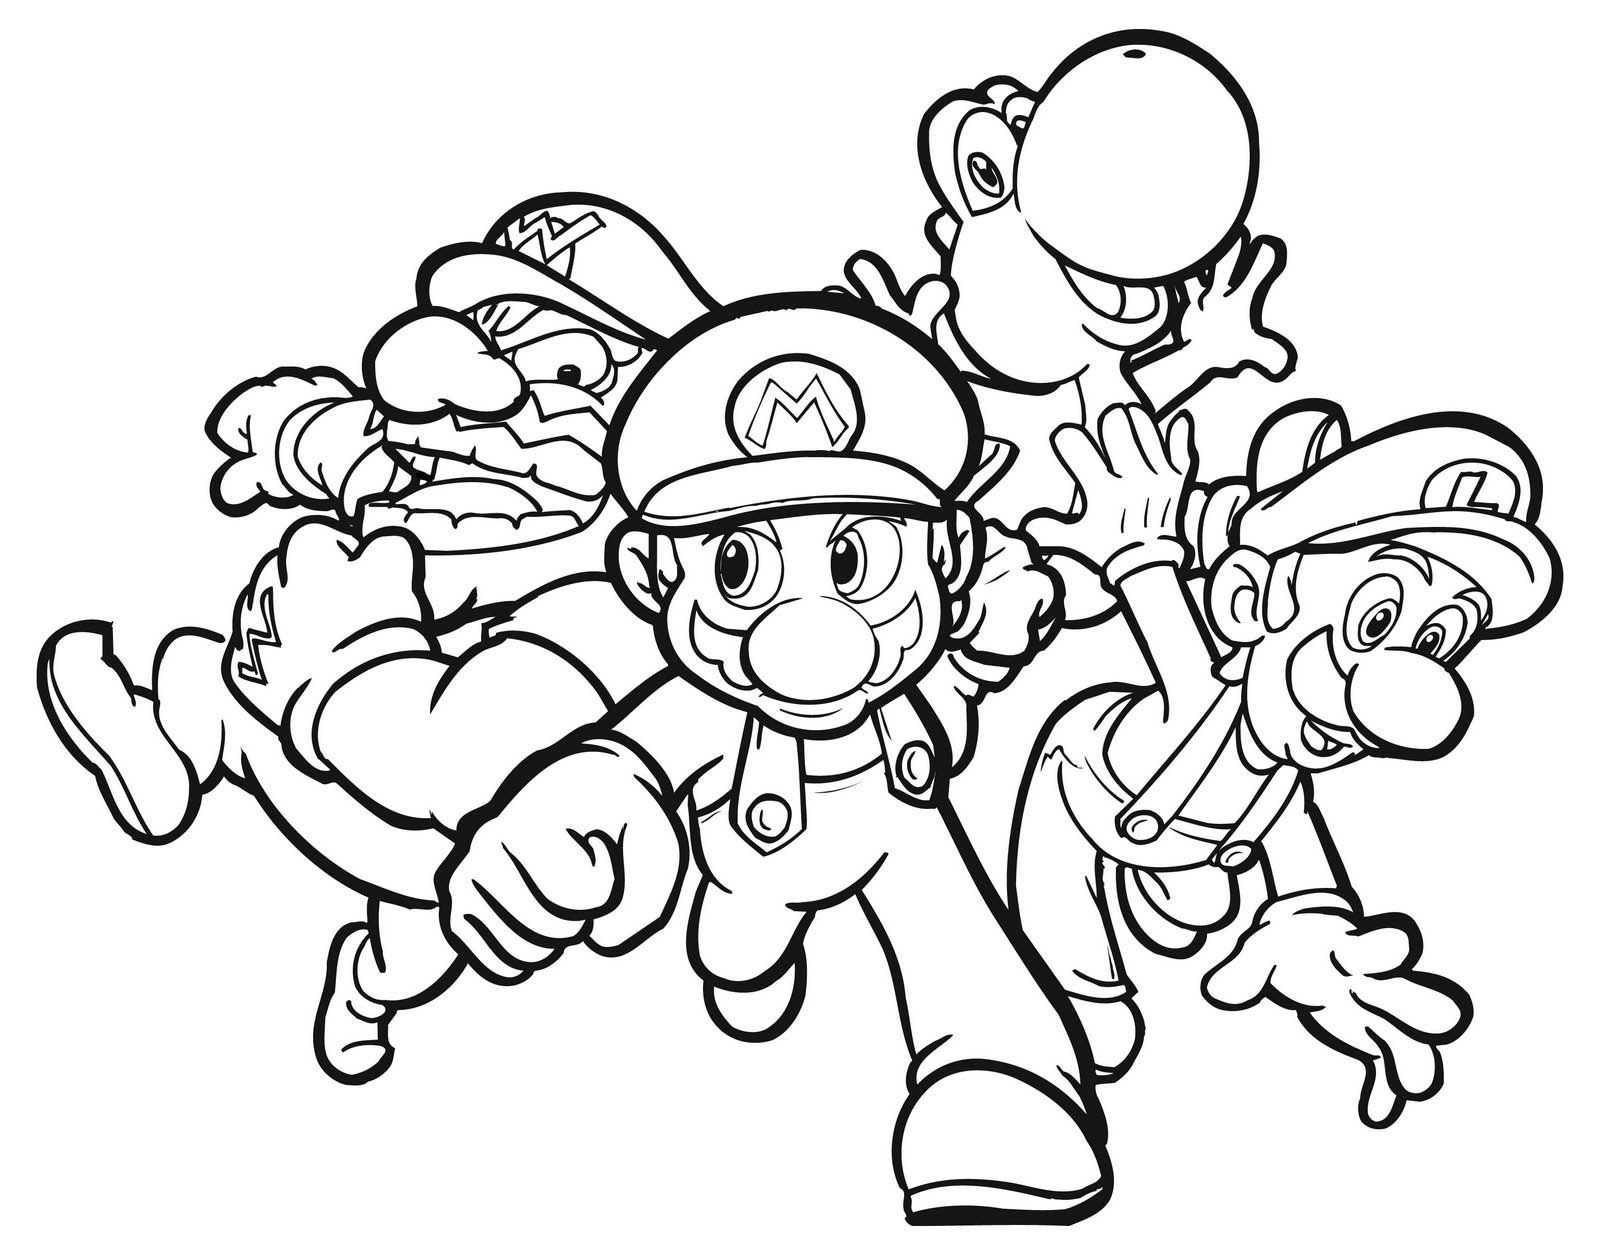 1600x1255 Super Mario Coloring Pages Kids Coloring Pages